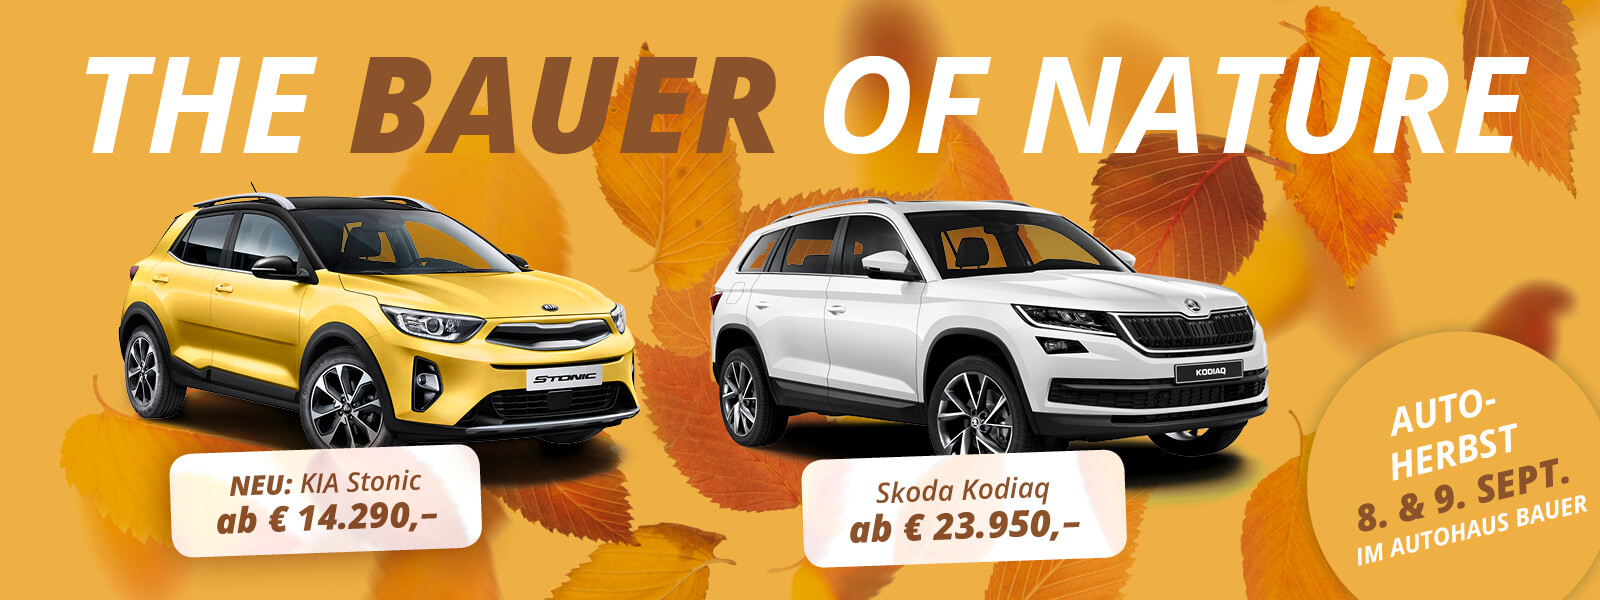 Autohaus Bauer | Skoda | Kia | Bauer of Nature - 8. & 9. September